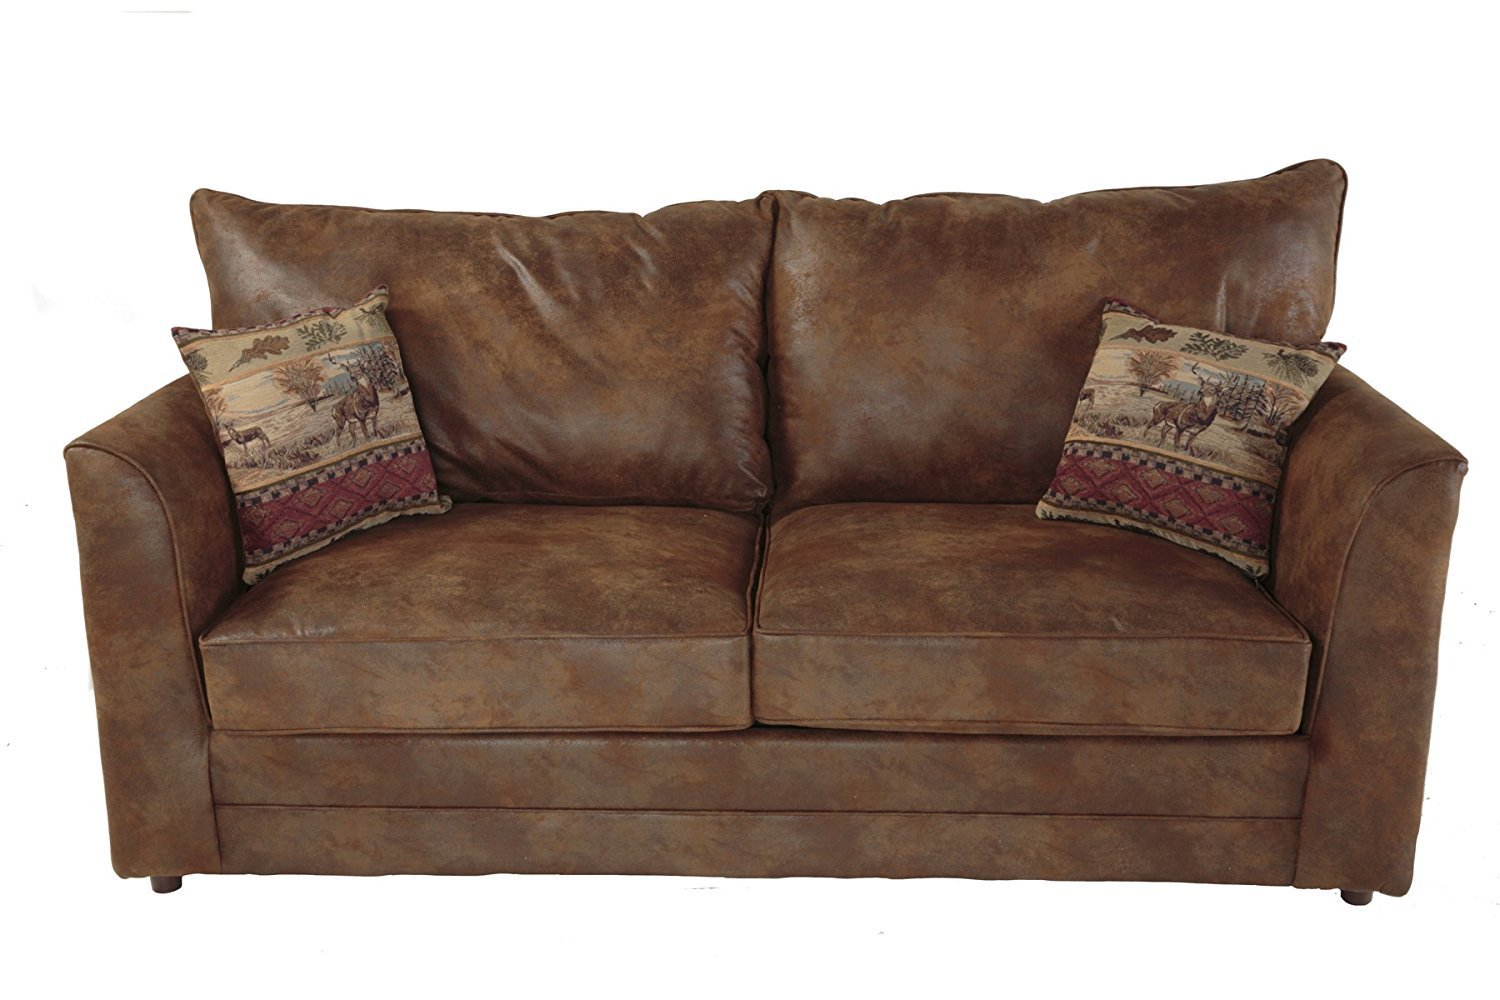 american furniture sleeper sofa sectional recliner classics palomino home